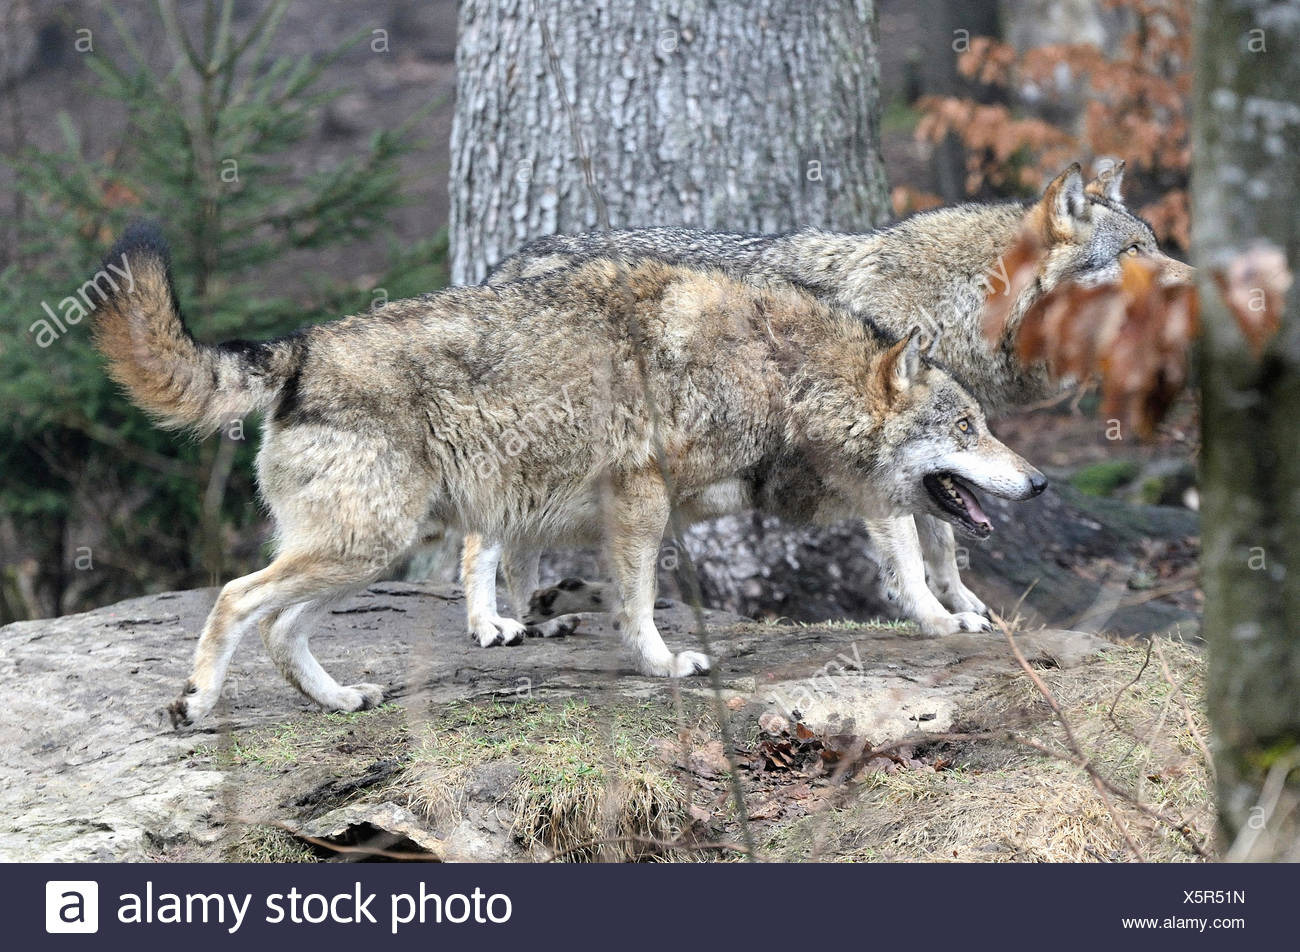 Canis lupus, canids, European Wolf, animal, Gray wolf, predators, wolves, predator, Wolf, animal, winter, snow, deep snow, cold, - Stock Image